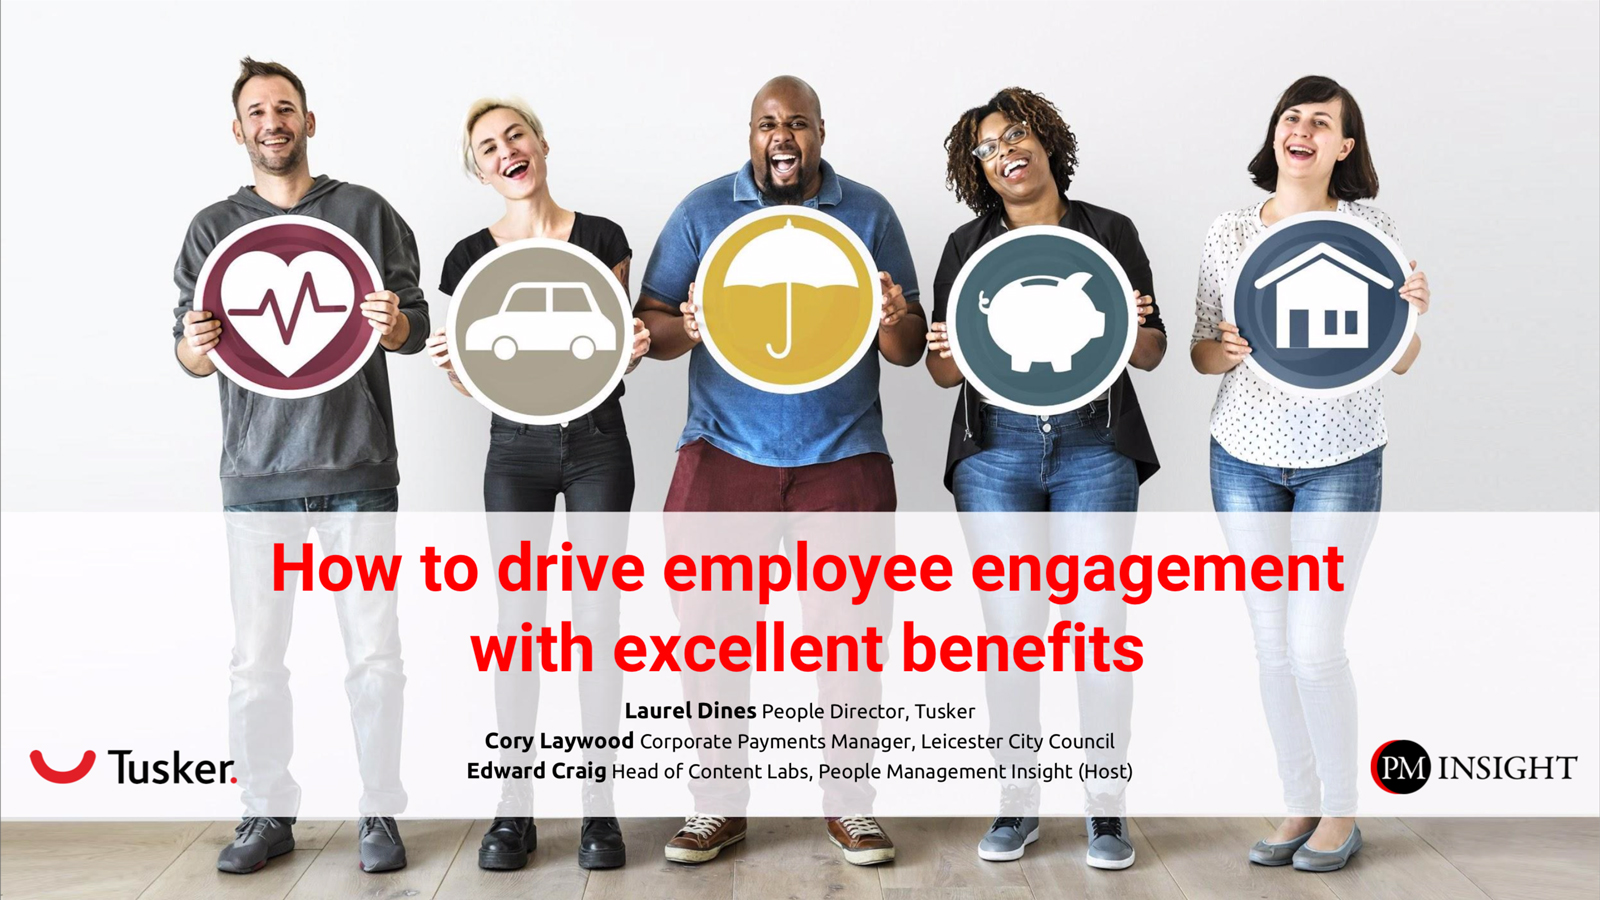 How to drive employee engagement with excellent benefits